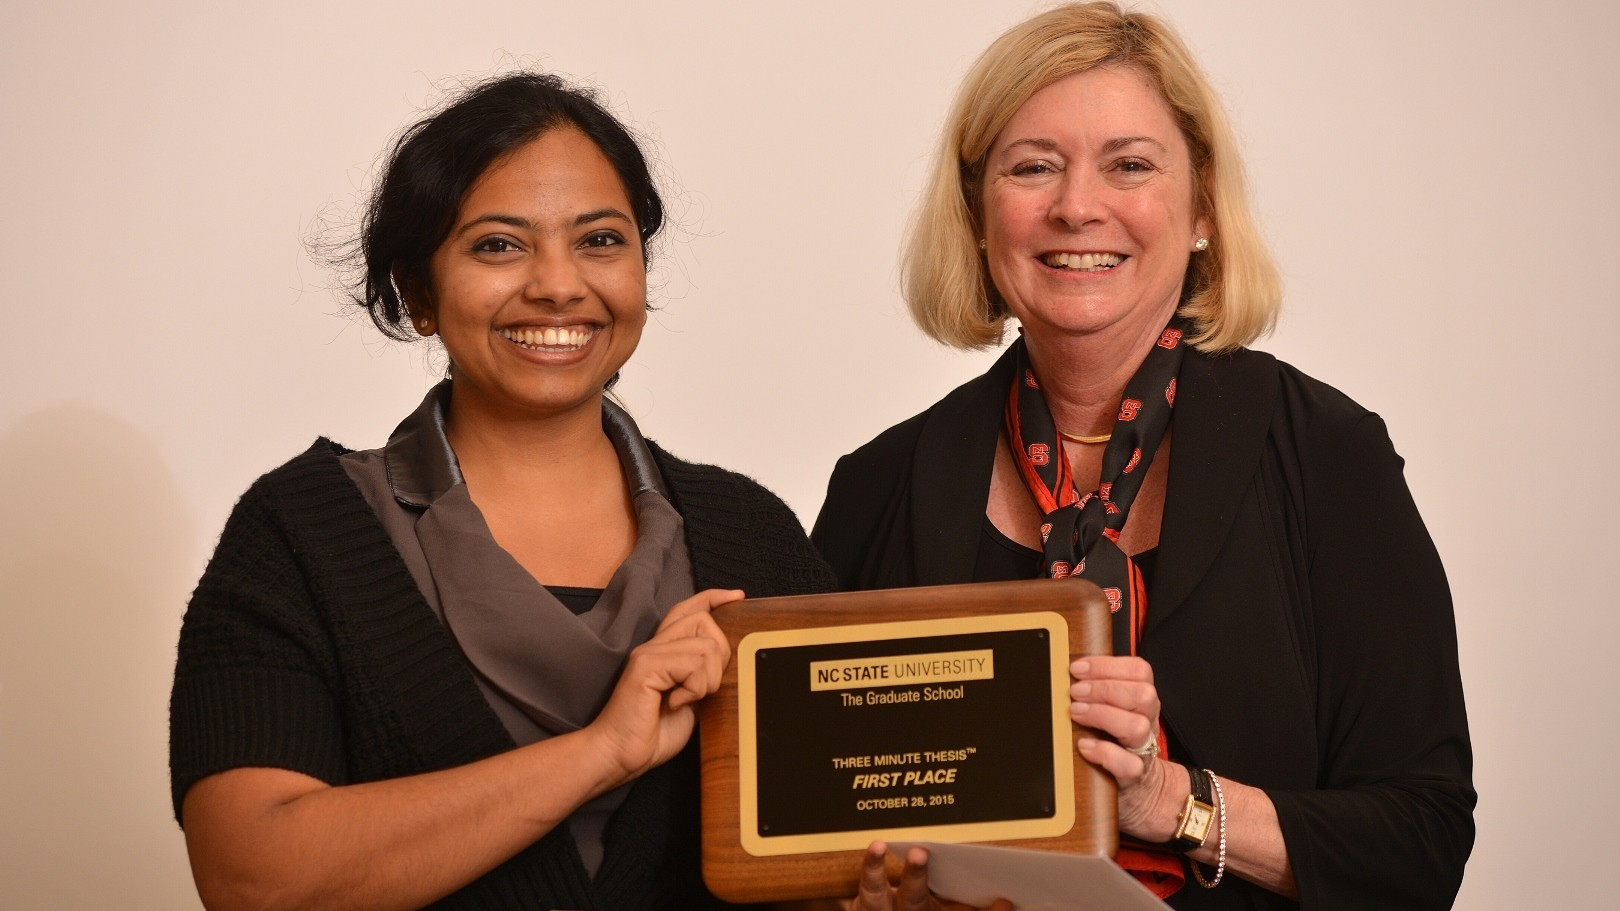 Haritha and Dean Grasso hold award plaque